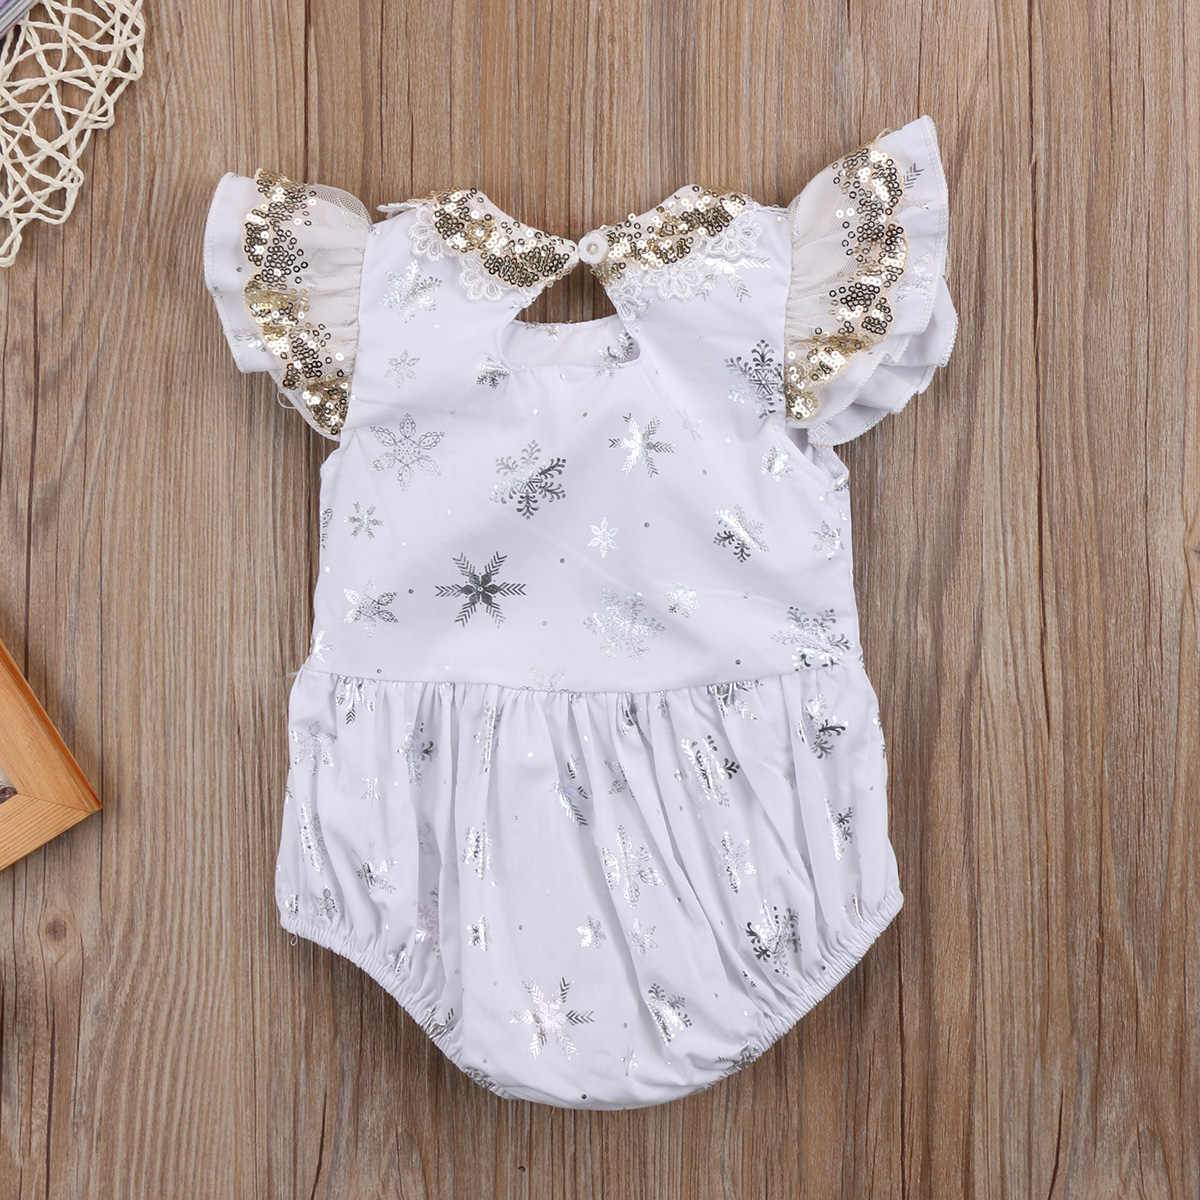 a27c69a5b7b2 ... Christmas Newborn Baby Girl Lace Sequins Romper Jumpsuit Ruffles  Snowflake Print White Purple Rompers Outfits Xmas